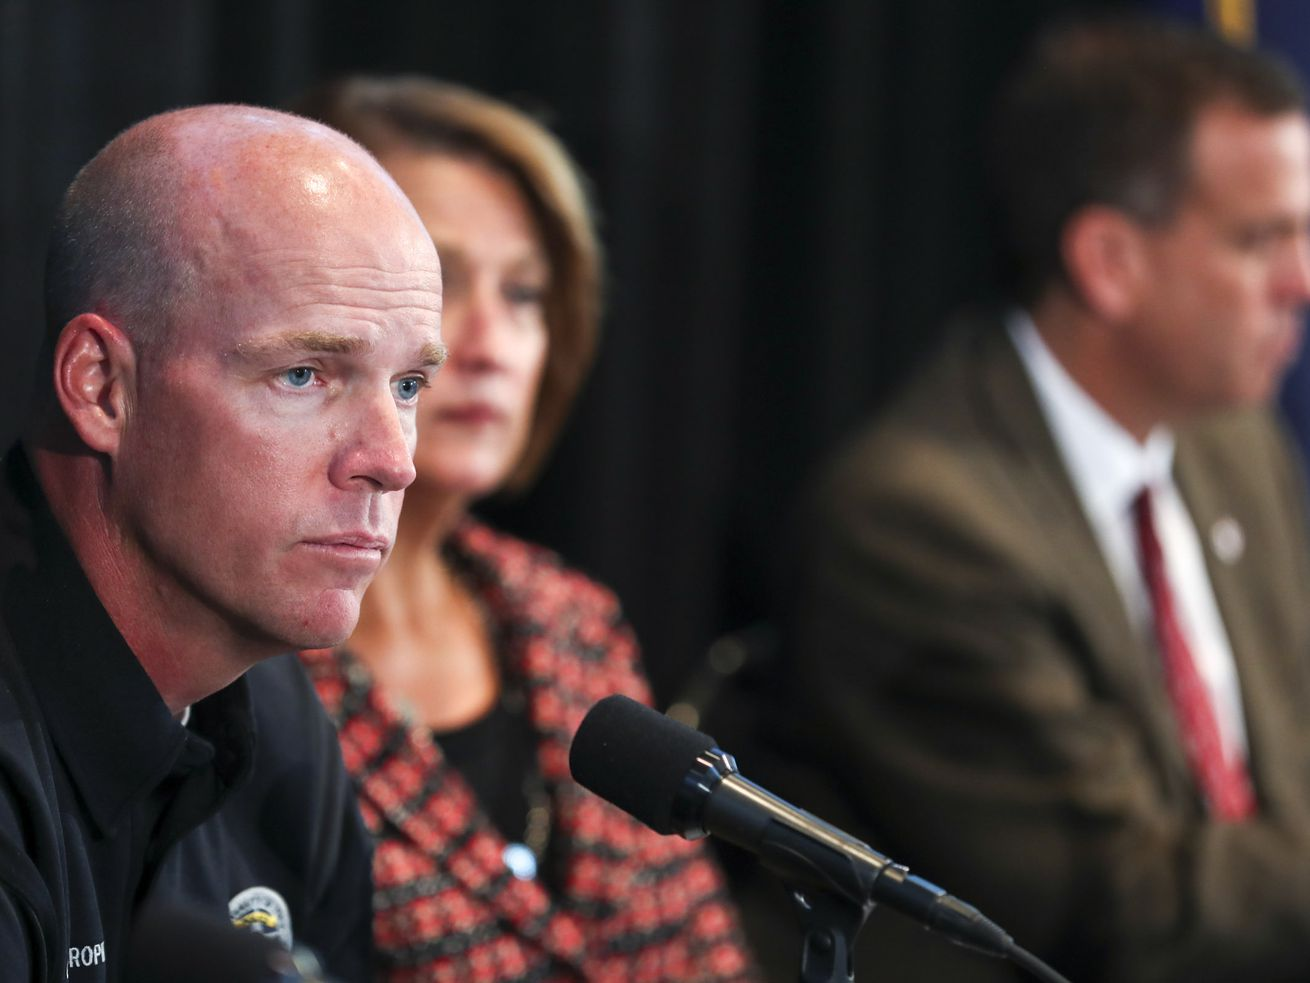 Former University of Utah police chief, officers say they were scapegoats after Lauren McCluskey murder in $10 million claim